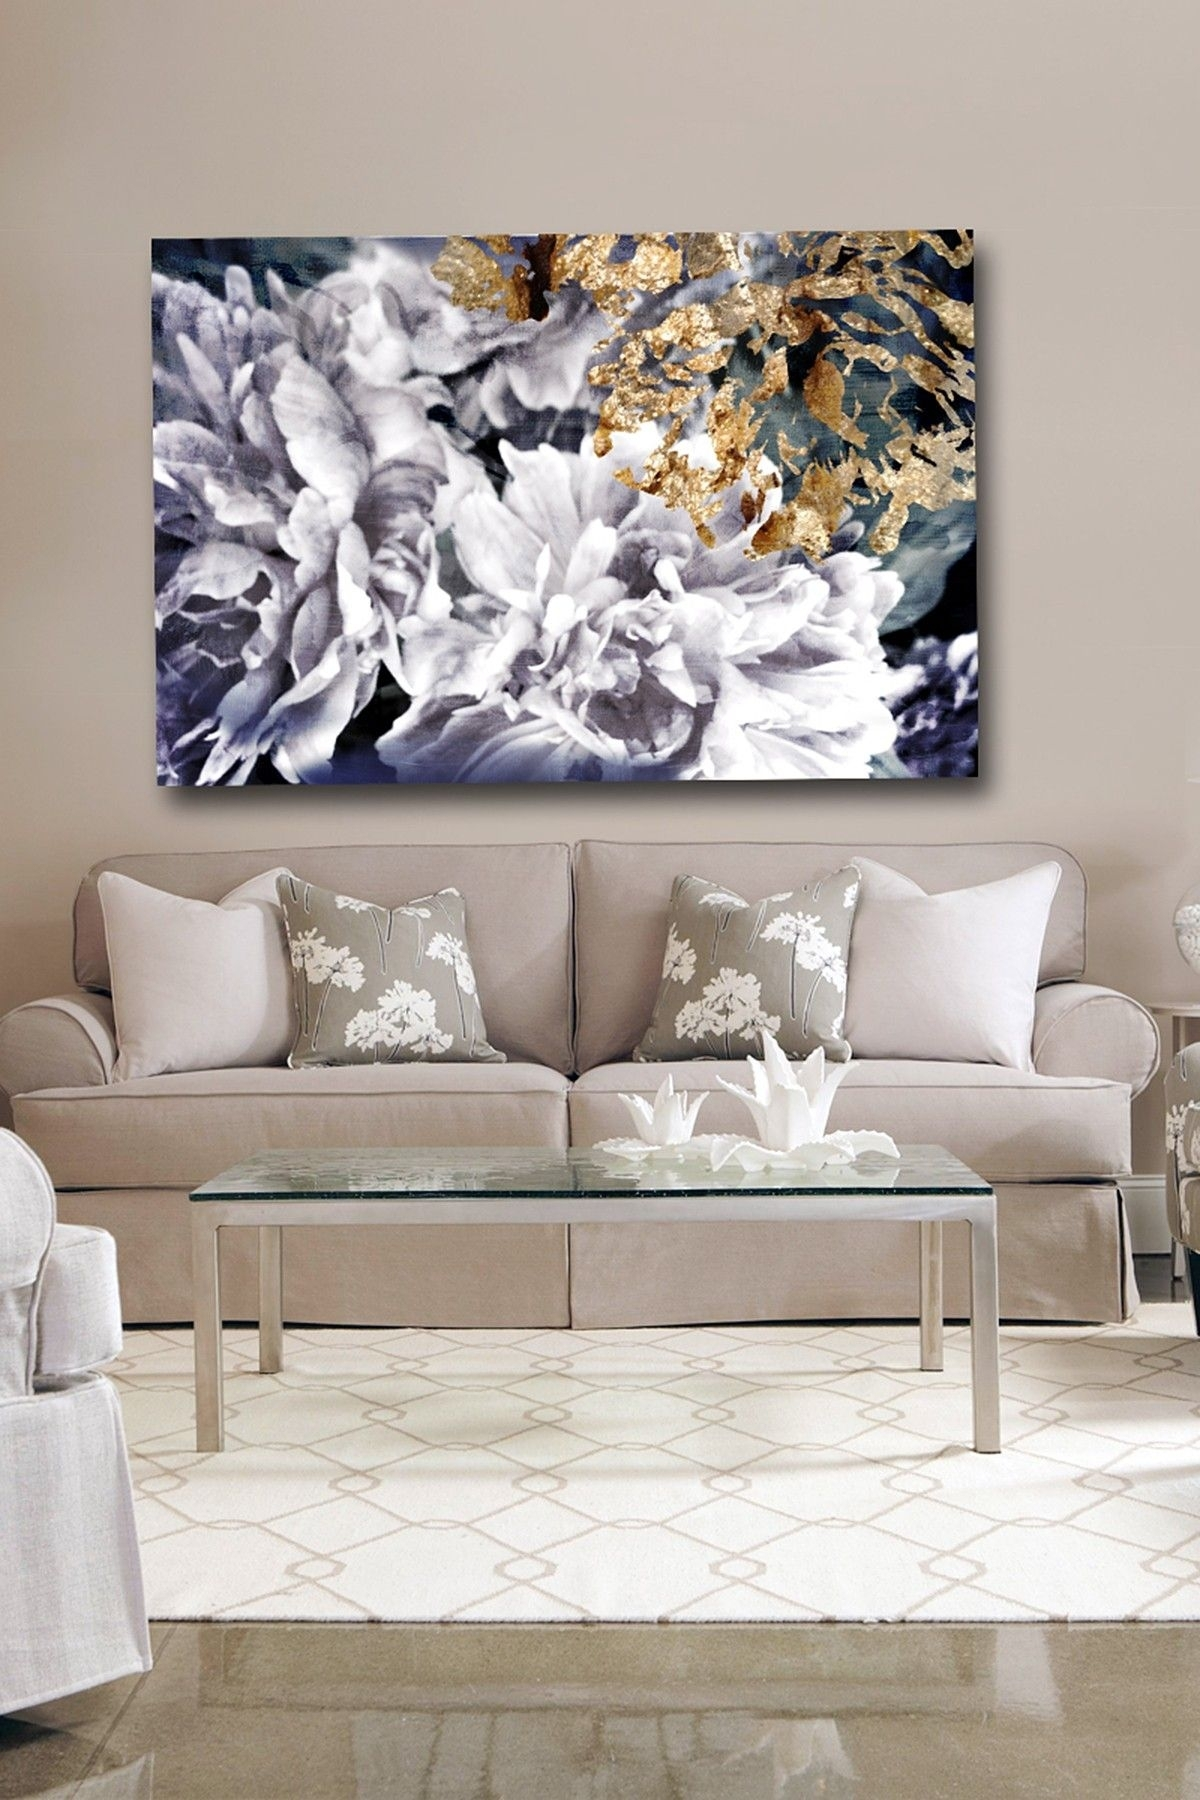 Oliver Gal Dos Gardenias Canvas Wall Art | Hautelook | Home Pertaining To Most Recent Mississauga Canvas Wall Art (View 11 of 15)